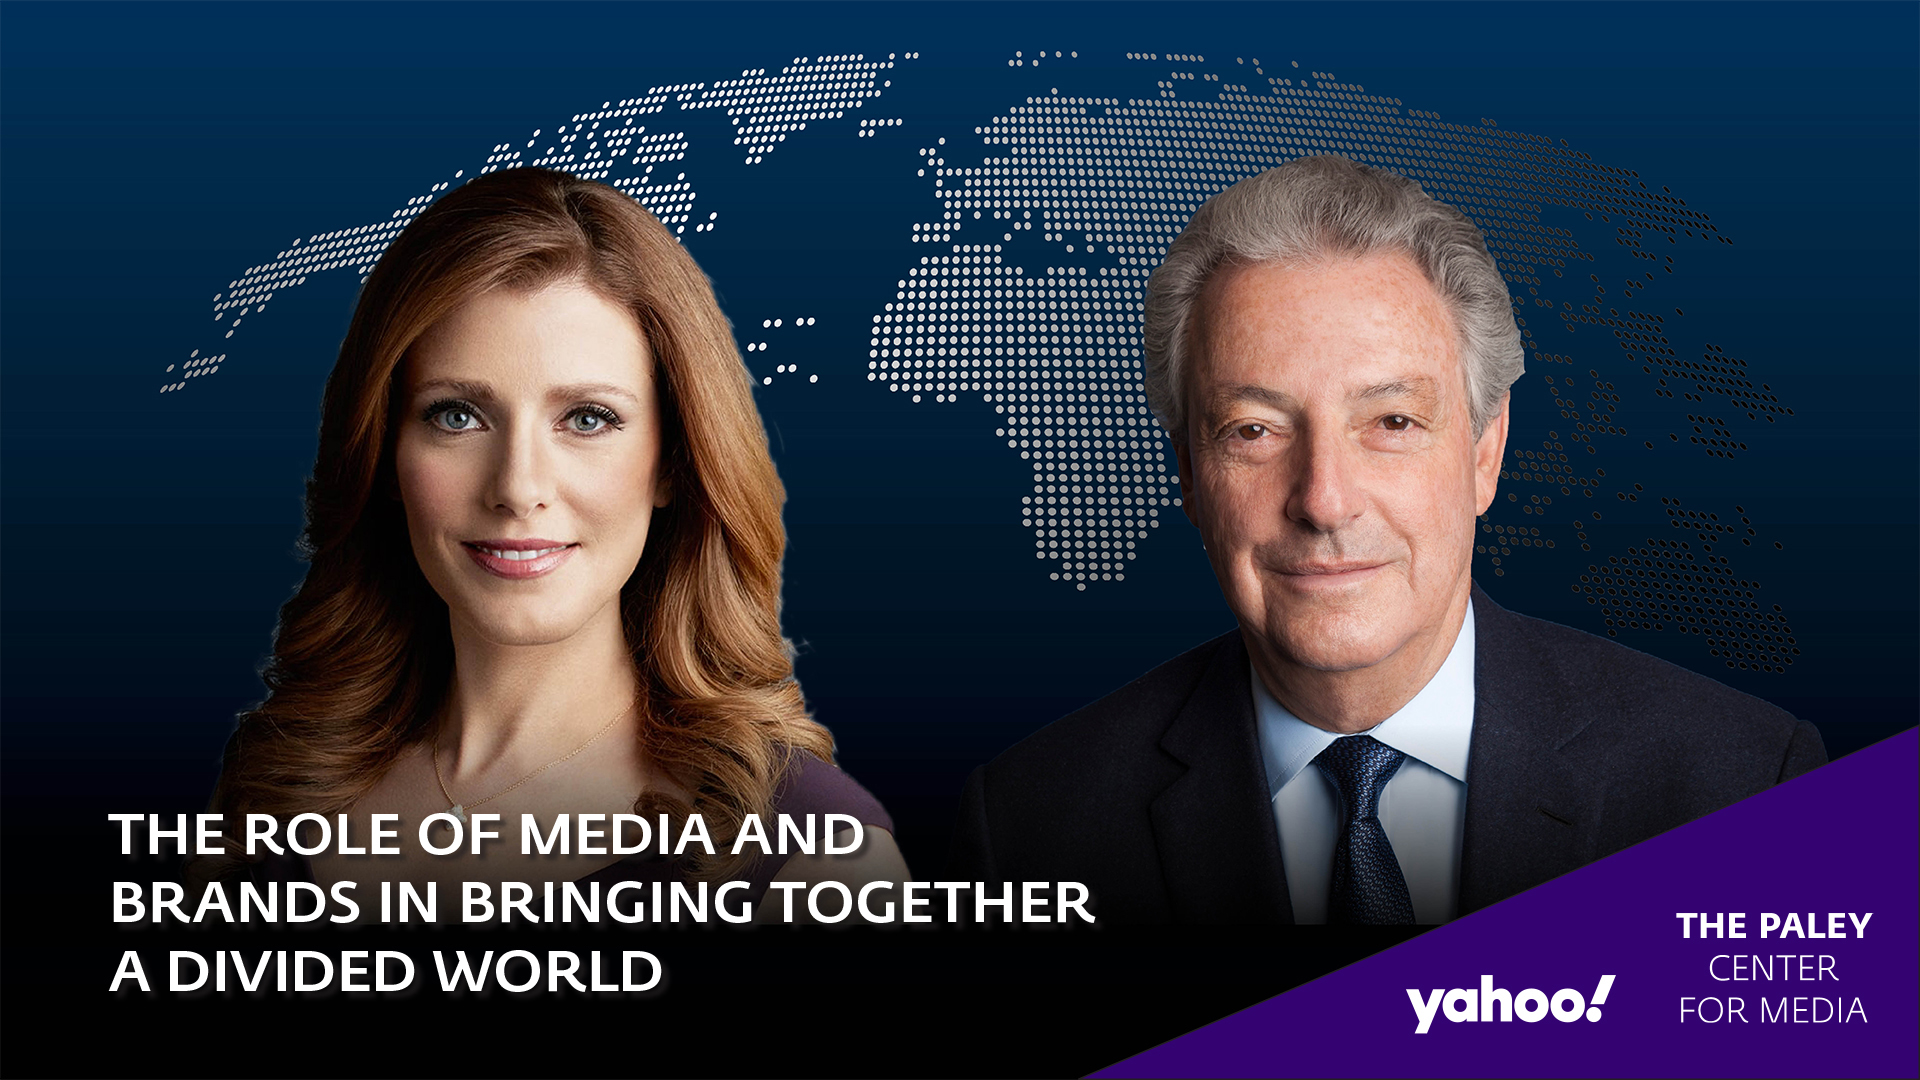 Paley International Council Summit 2020: The Role of Media and Brands in Bringing Together a Divided World